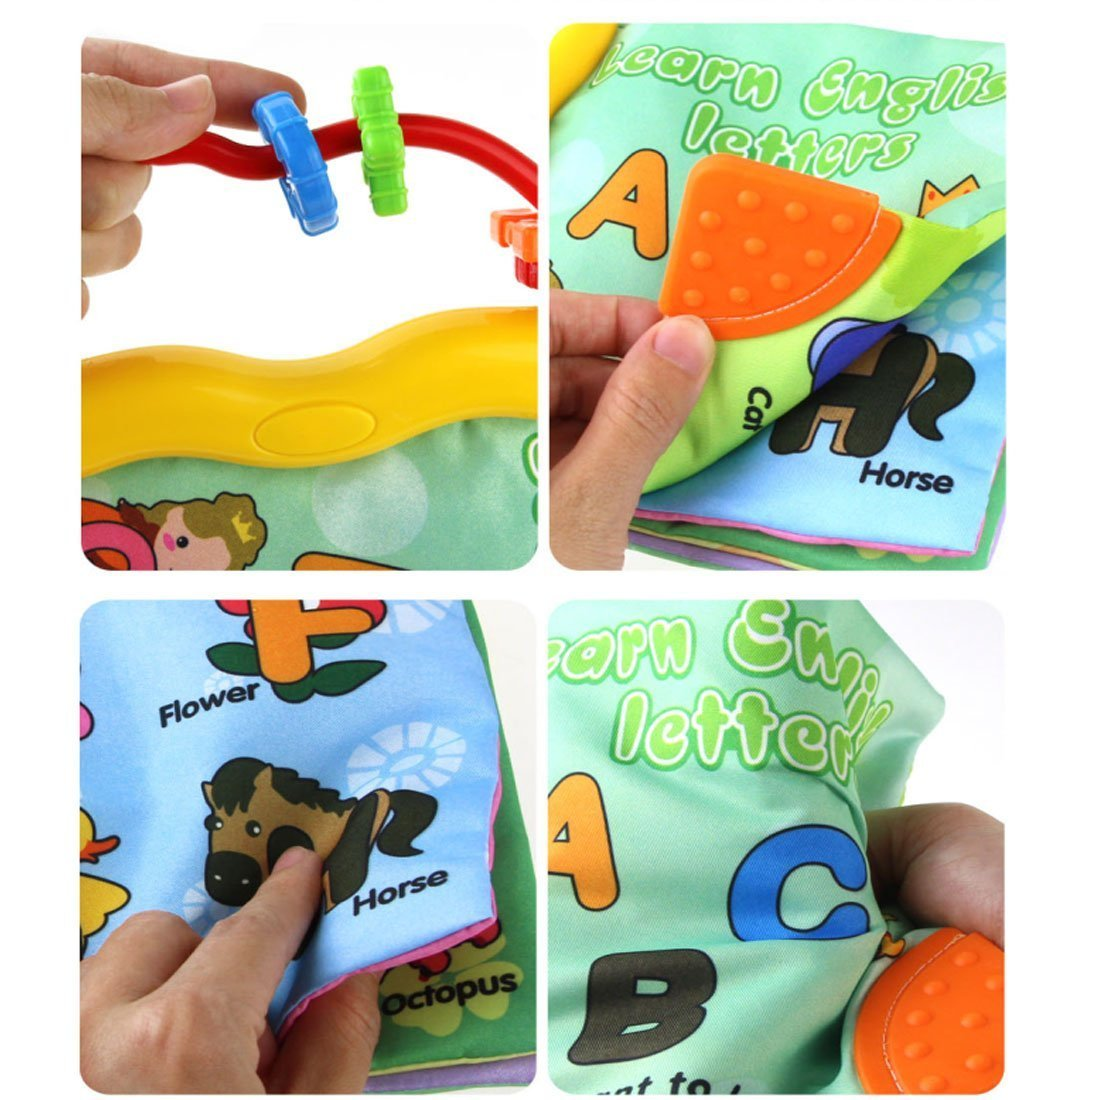 Baby Earlyears Tactile and Educational Non-toxic Cloth Soft Book-Teether Rings-Infant Learning toy English Letters A B C - Squeak, Rattle, Crinkle toddler Activity Gift by Tangomall (Image #3)